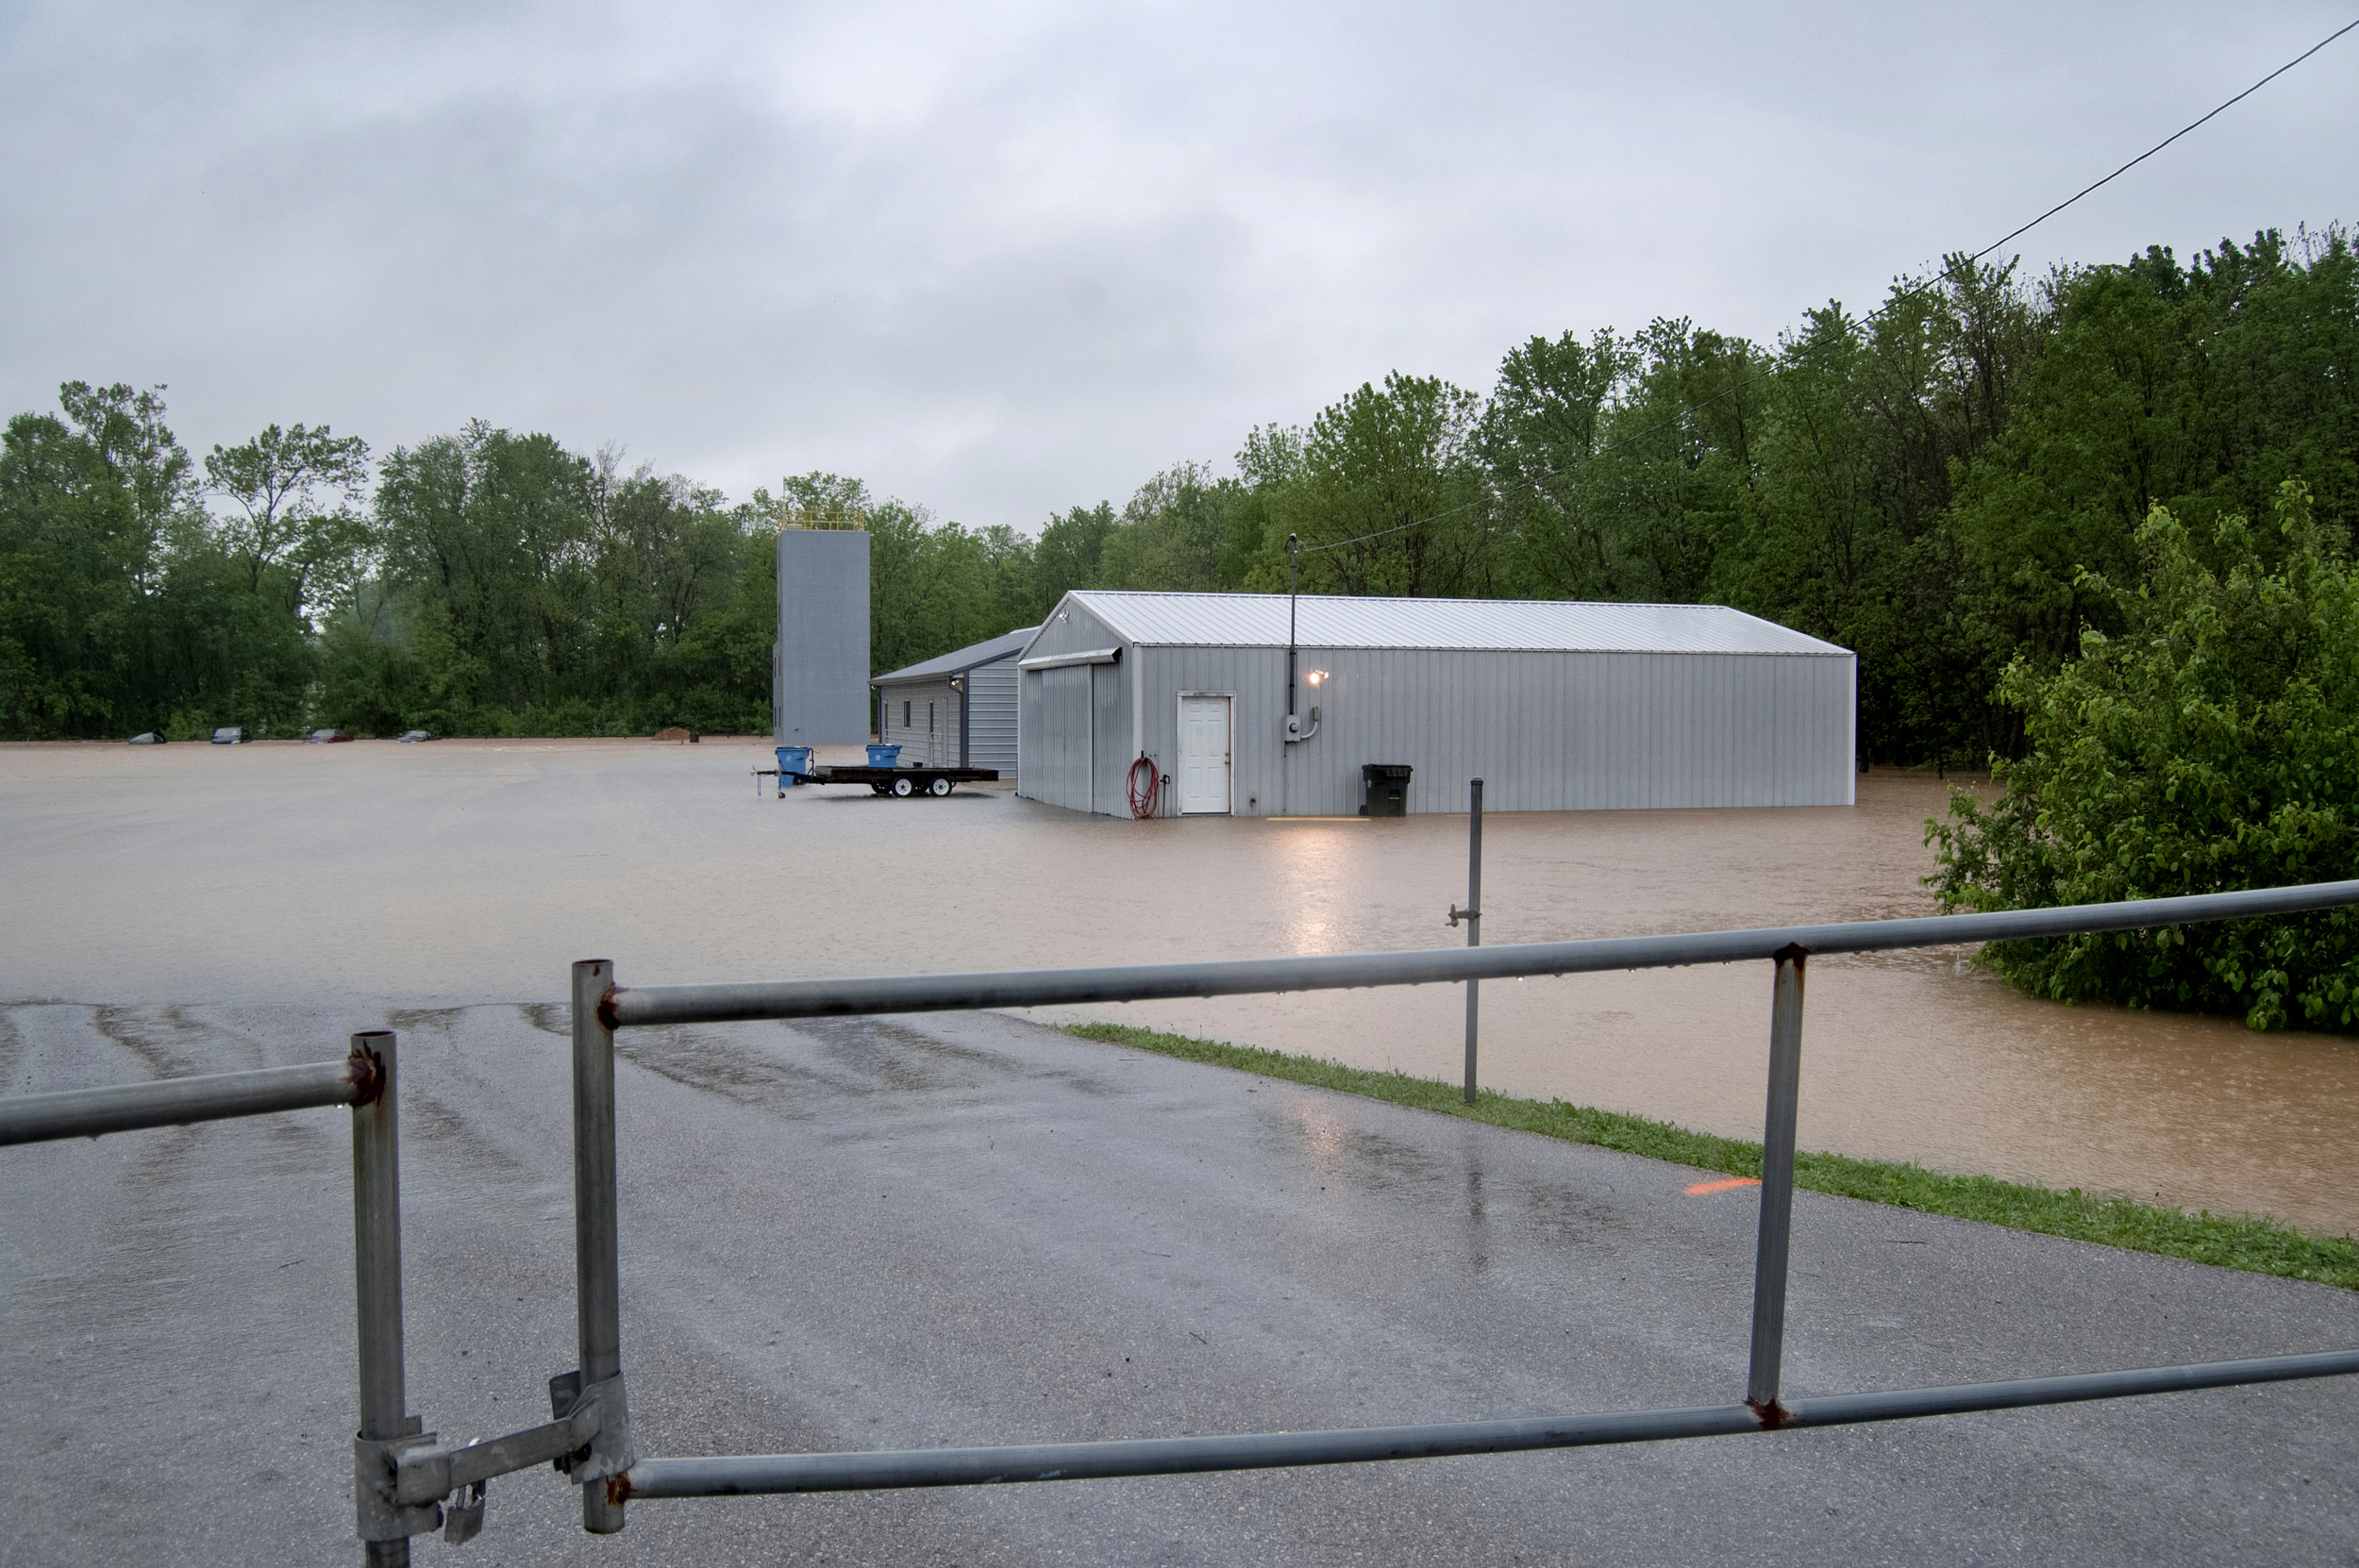 The fire department's training facility was surrounded by water.